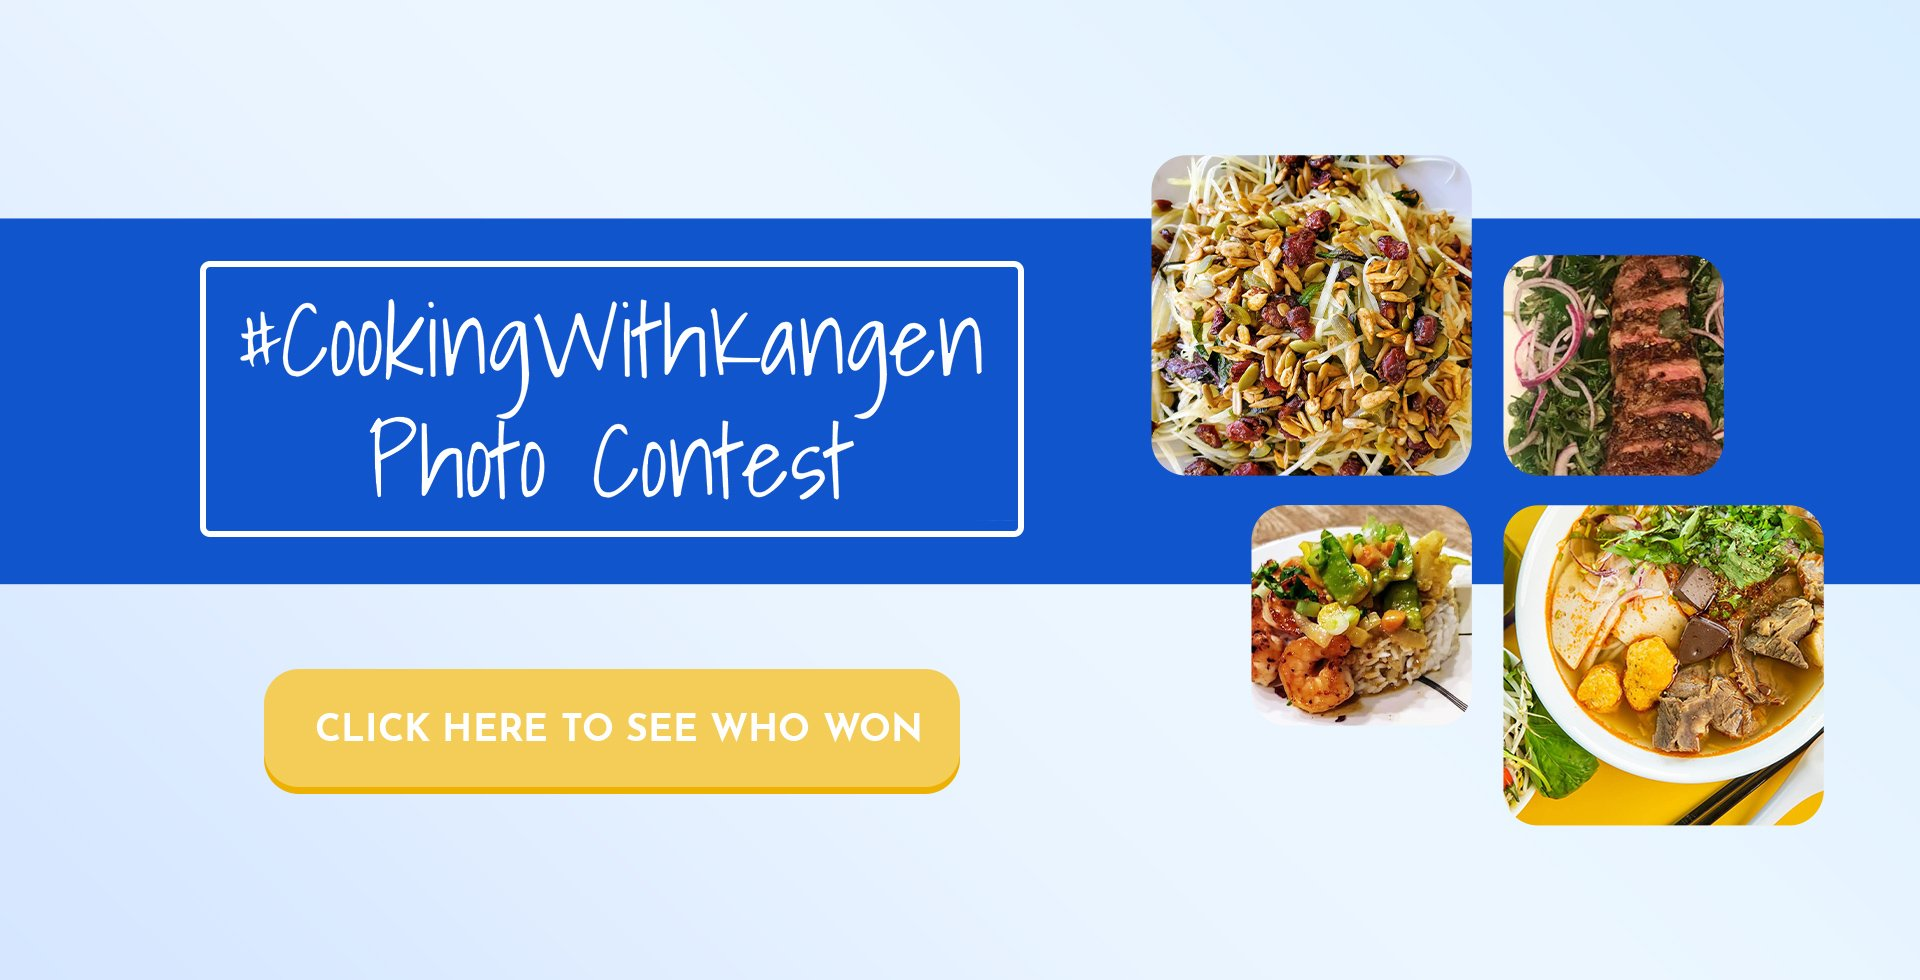 Cooking With Kangen Photo Contest